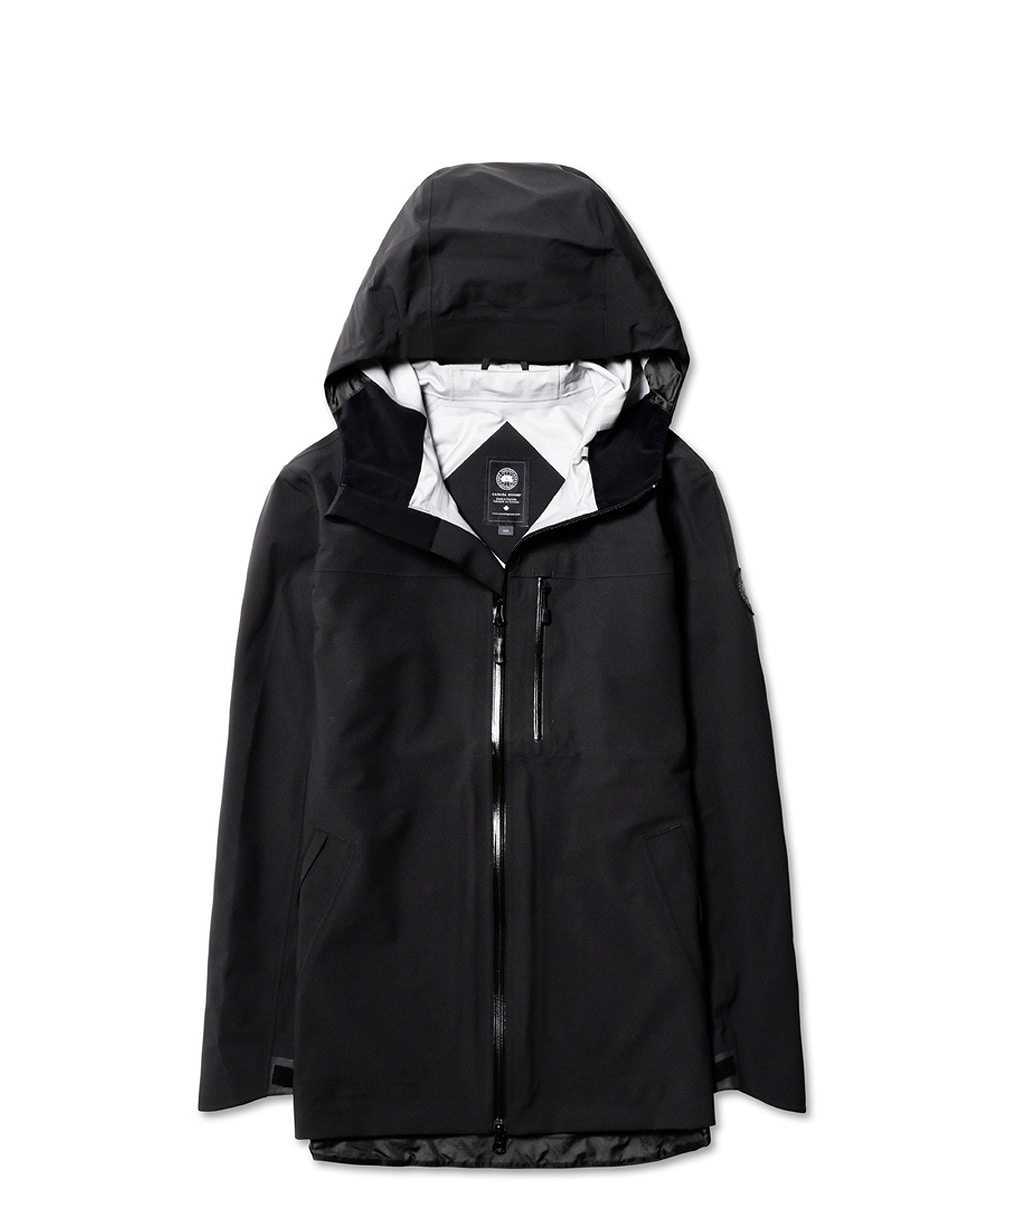 COASTAL SHELL JACKET BLACK LABEL